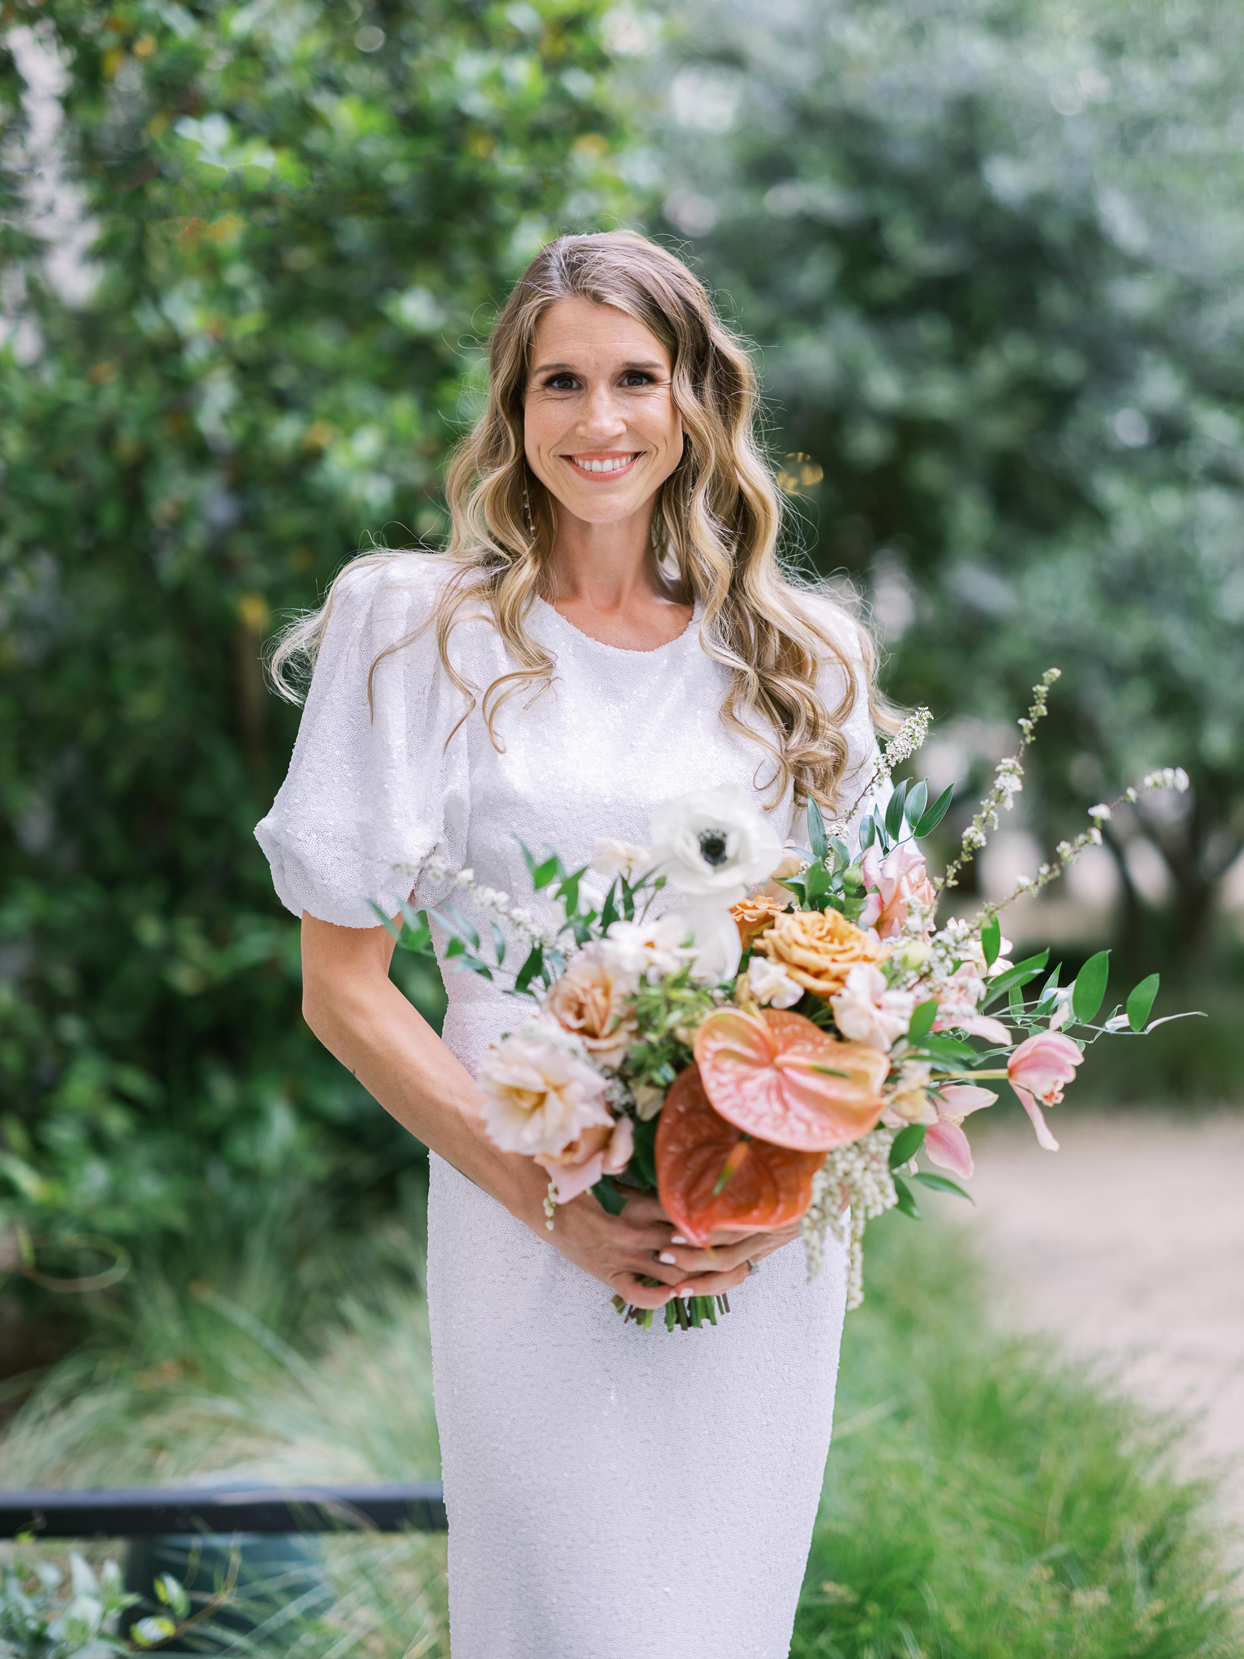 bride smiling holding bouquet of poppies roses and anthurium flowers